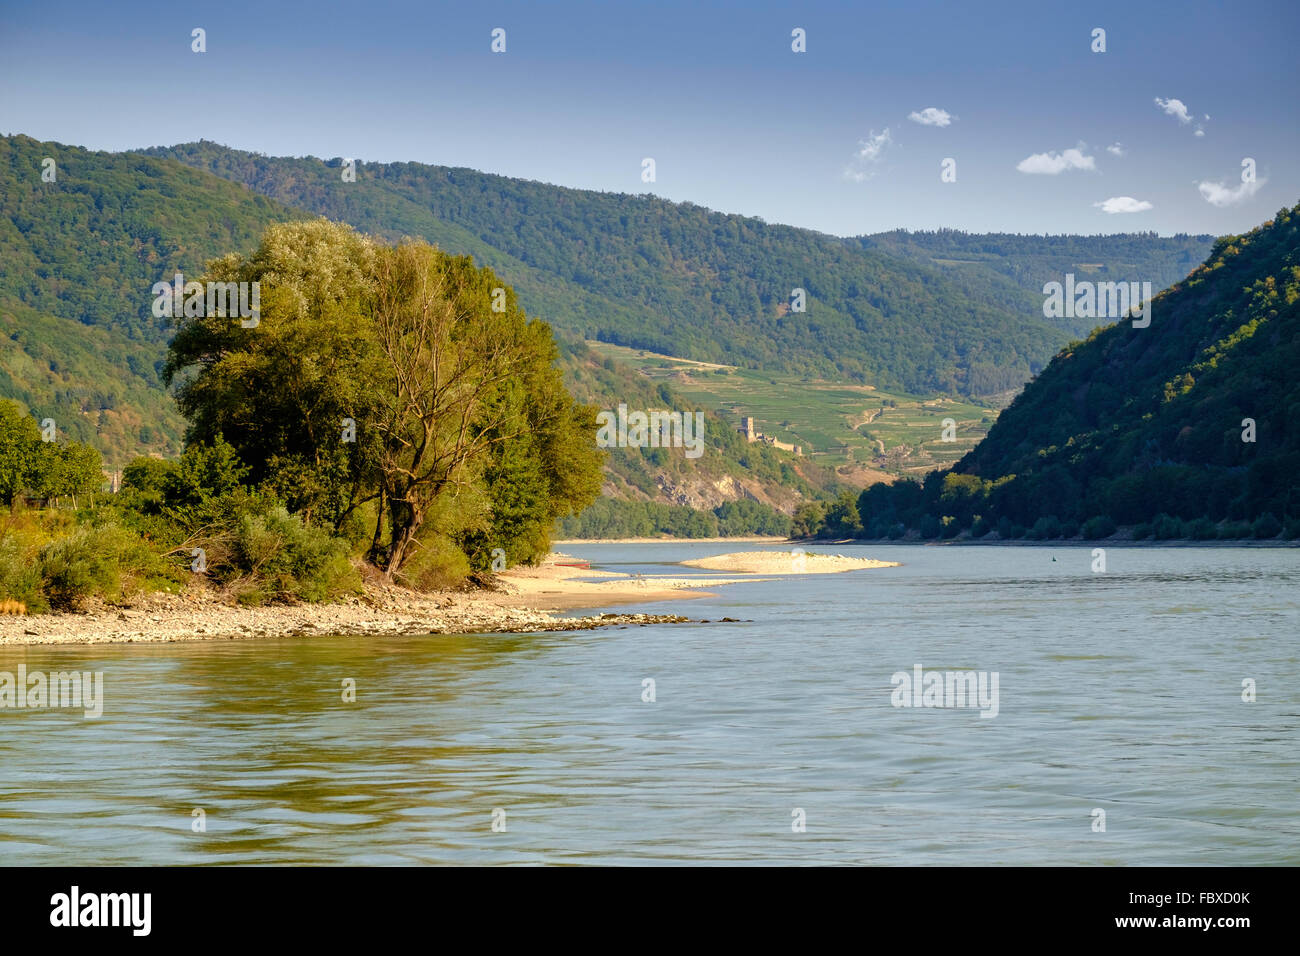 Fantastisch Charmant Ruins Of Hinterhaus Castle On River Danube In Wachau Valley  Austria Europe. Stock Image